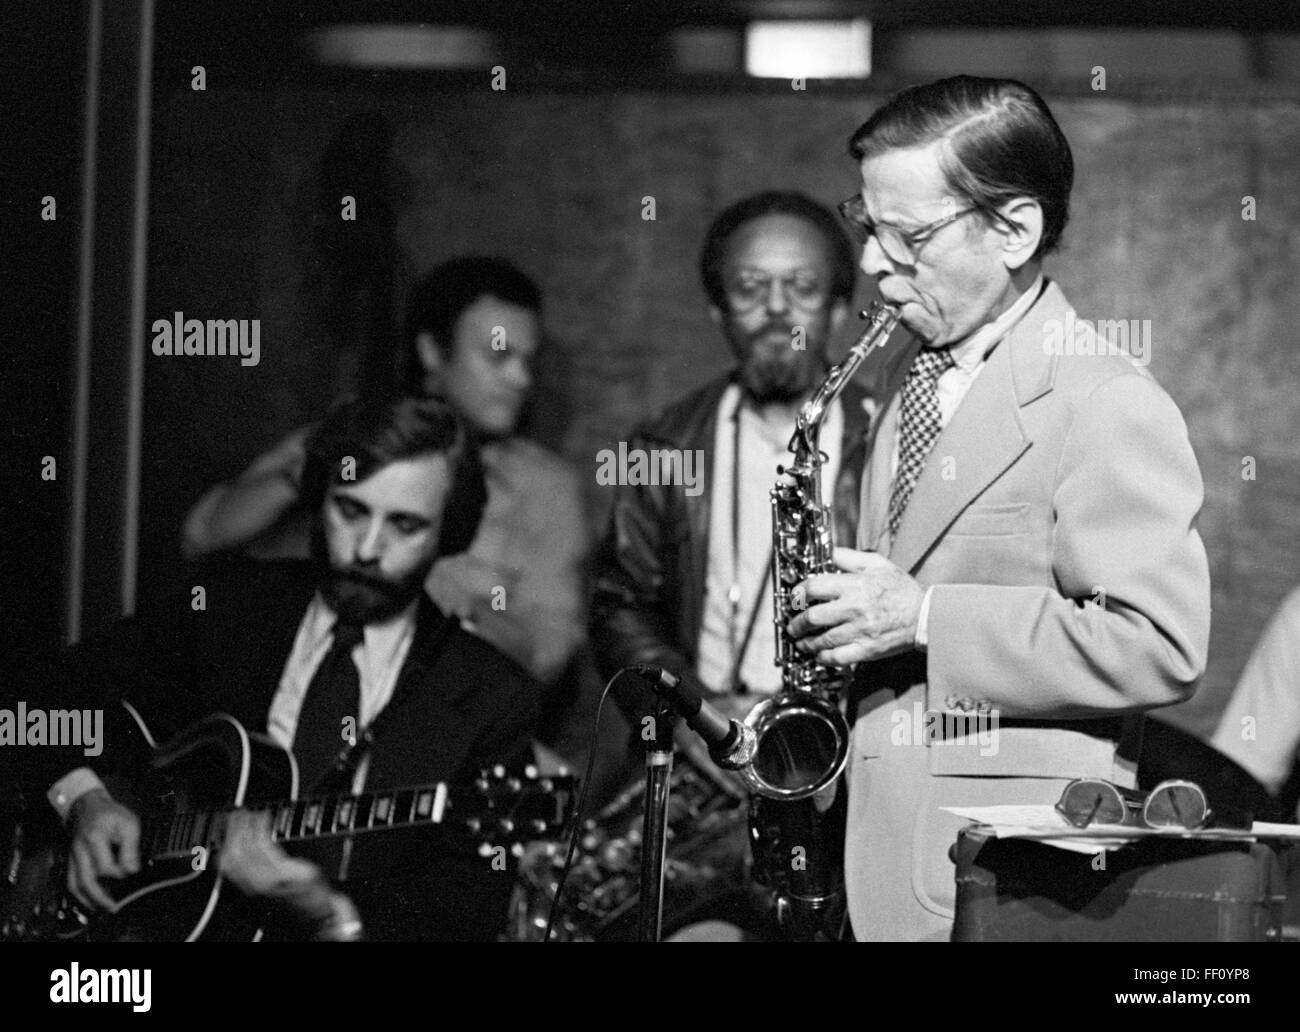 "Les Lieber on sax, Bill Wurtzel guitar, Earl May bass, and Jimmy Heath, at Les Lieber's ""Jazz at Noon"" on 58th Street - Stock Image"